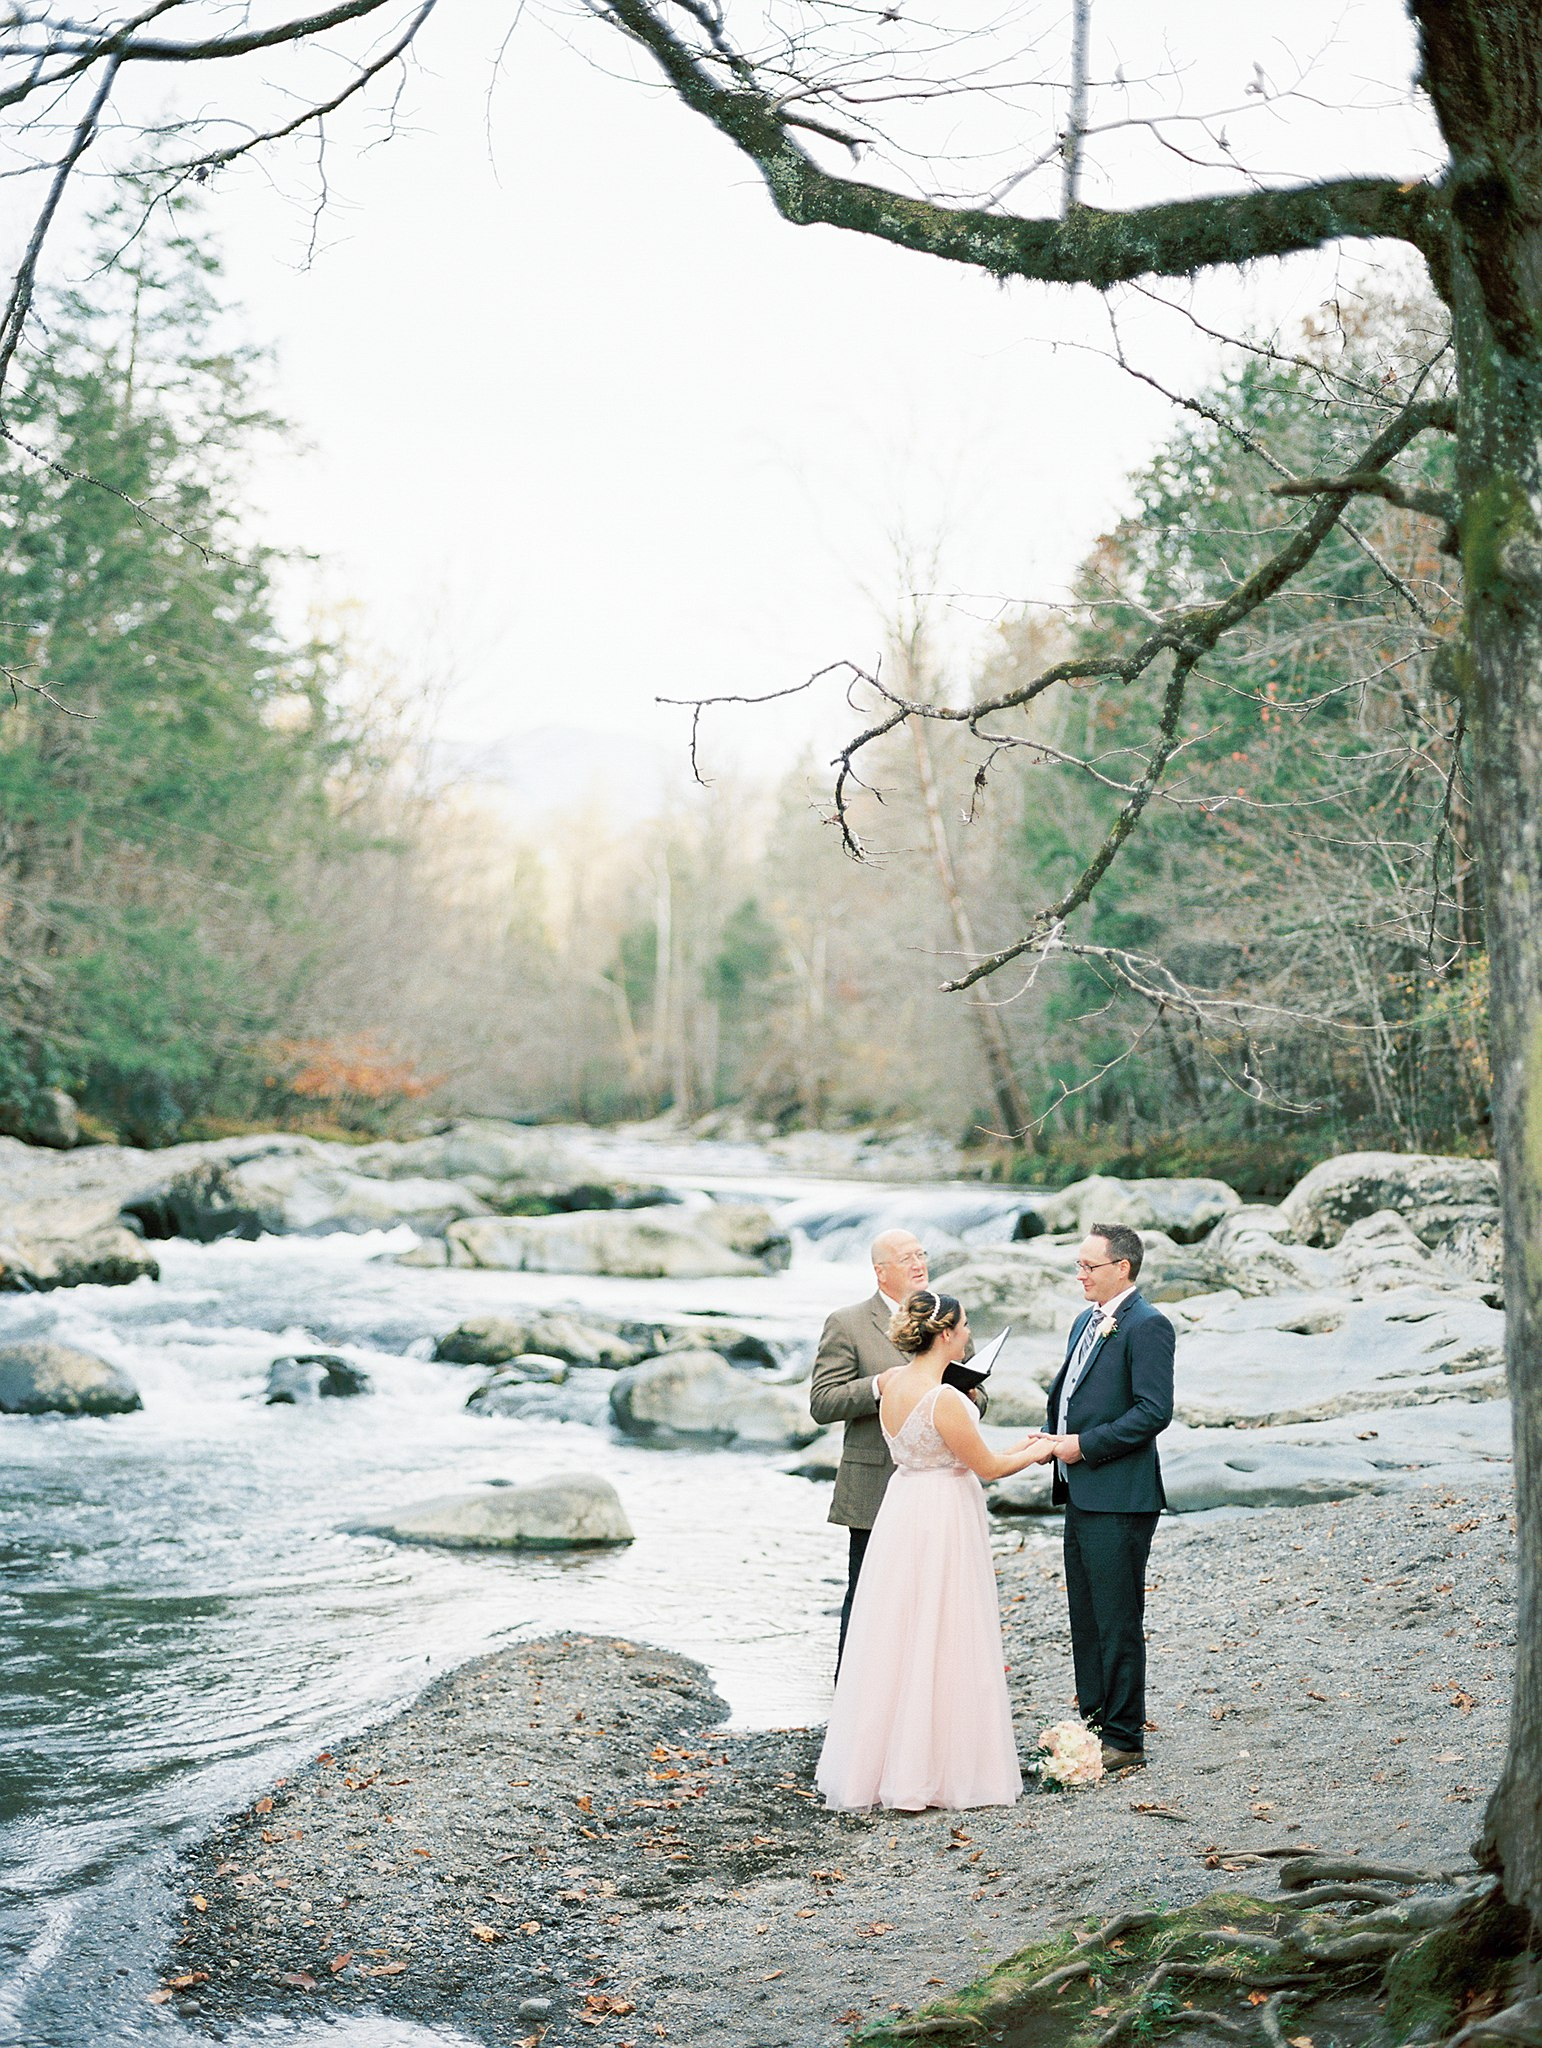 Gatlinburg Elopement - Jolee & Justin